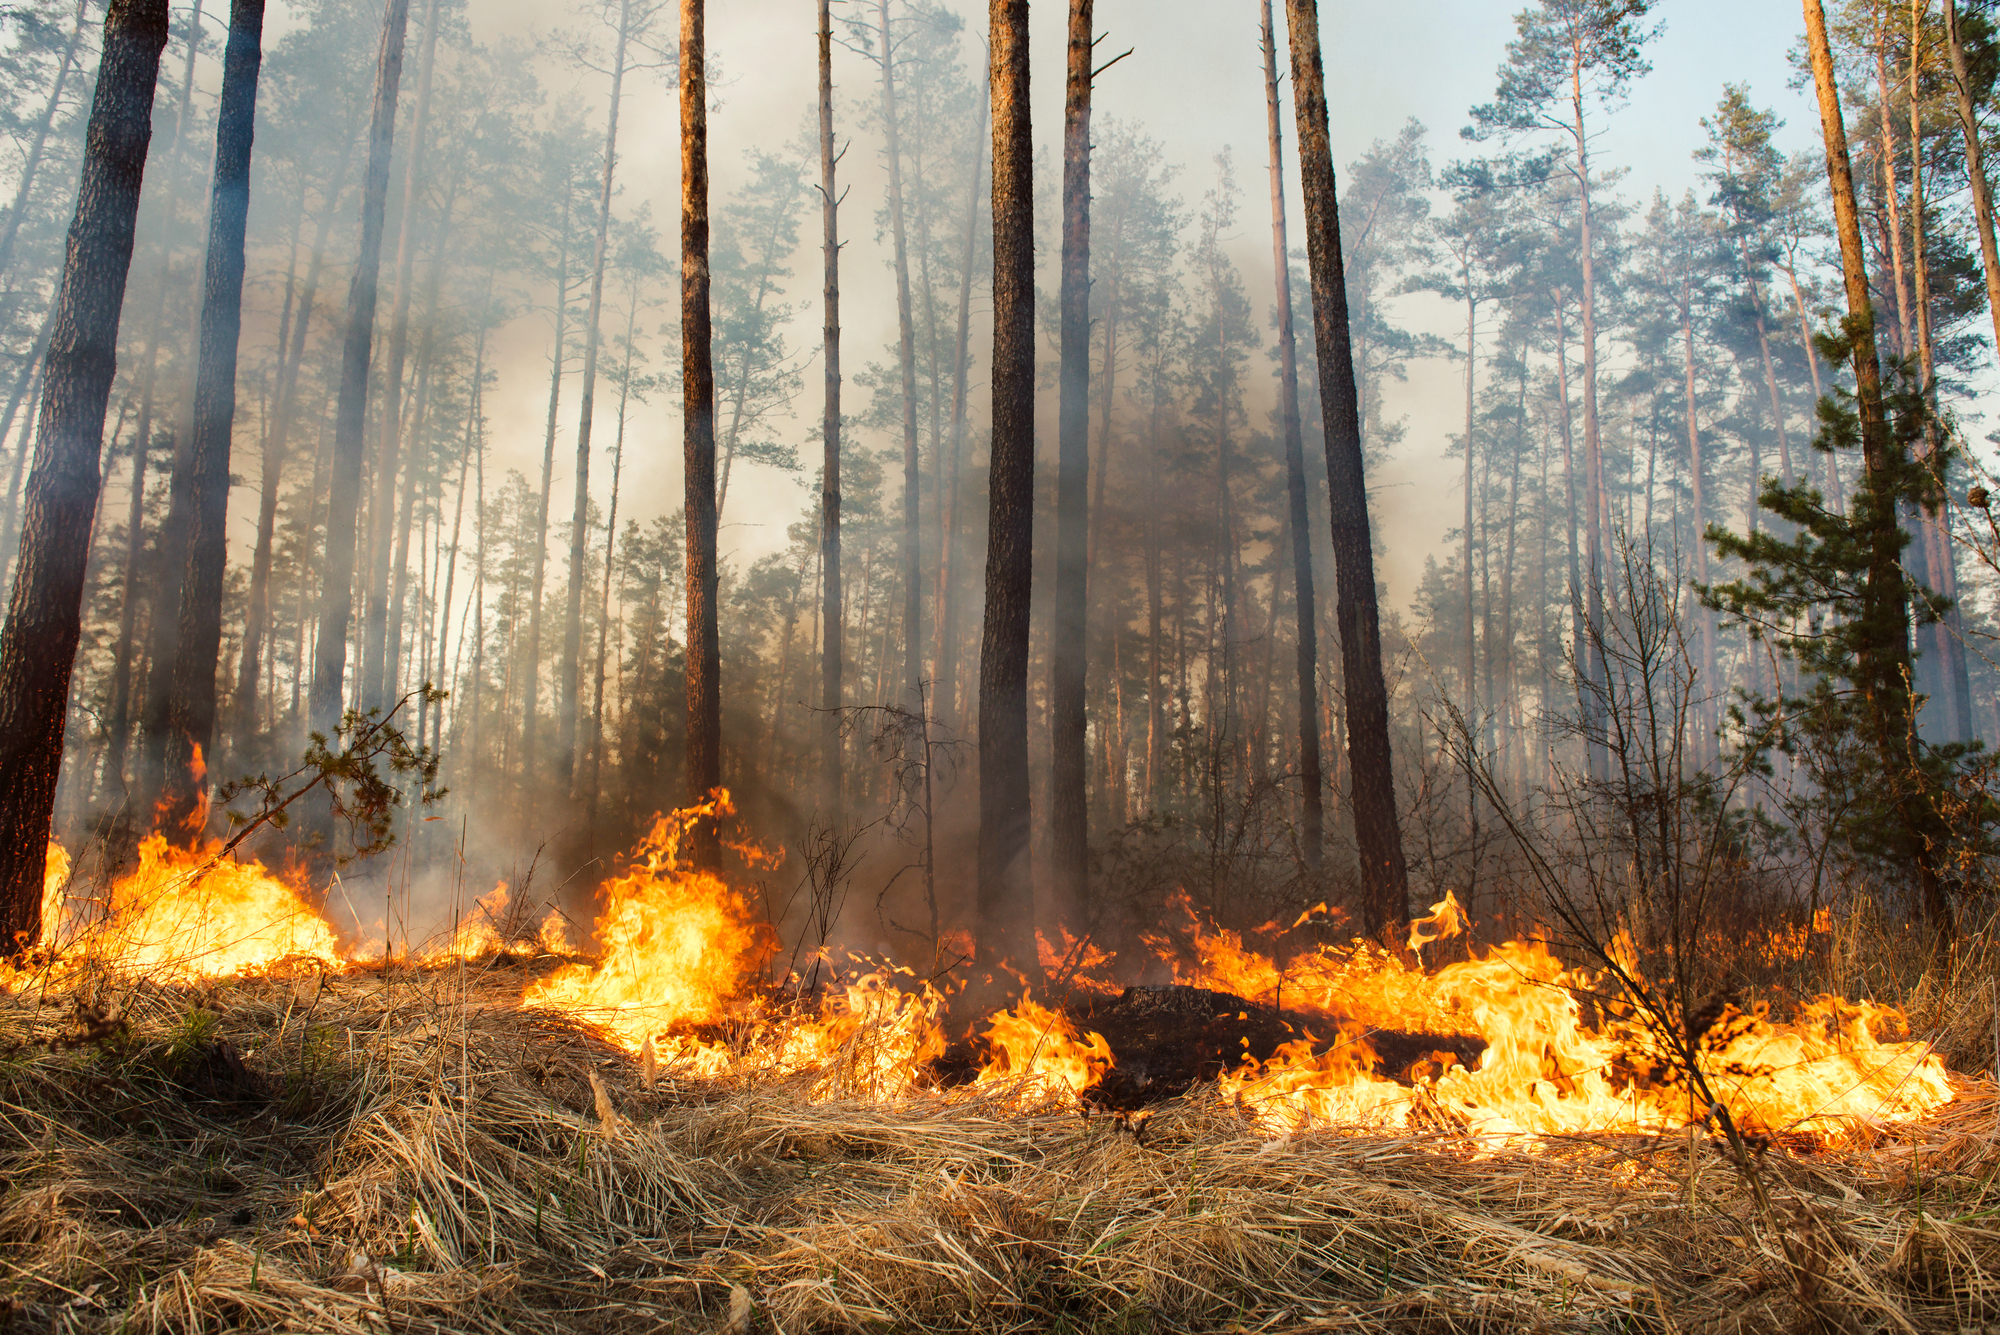 Wildfire Ignites Outside Yellowstone, Fire Danger High